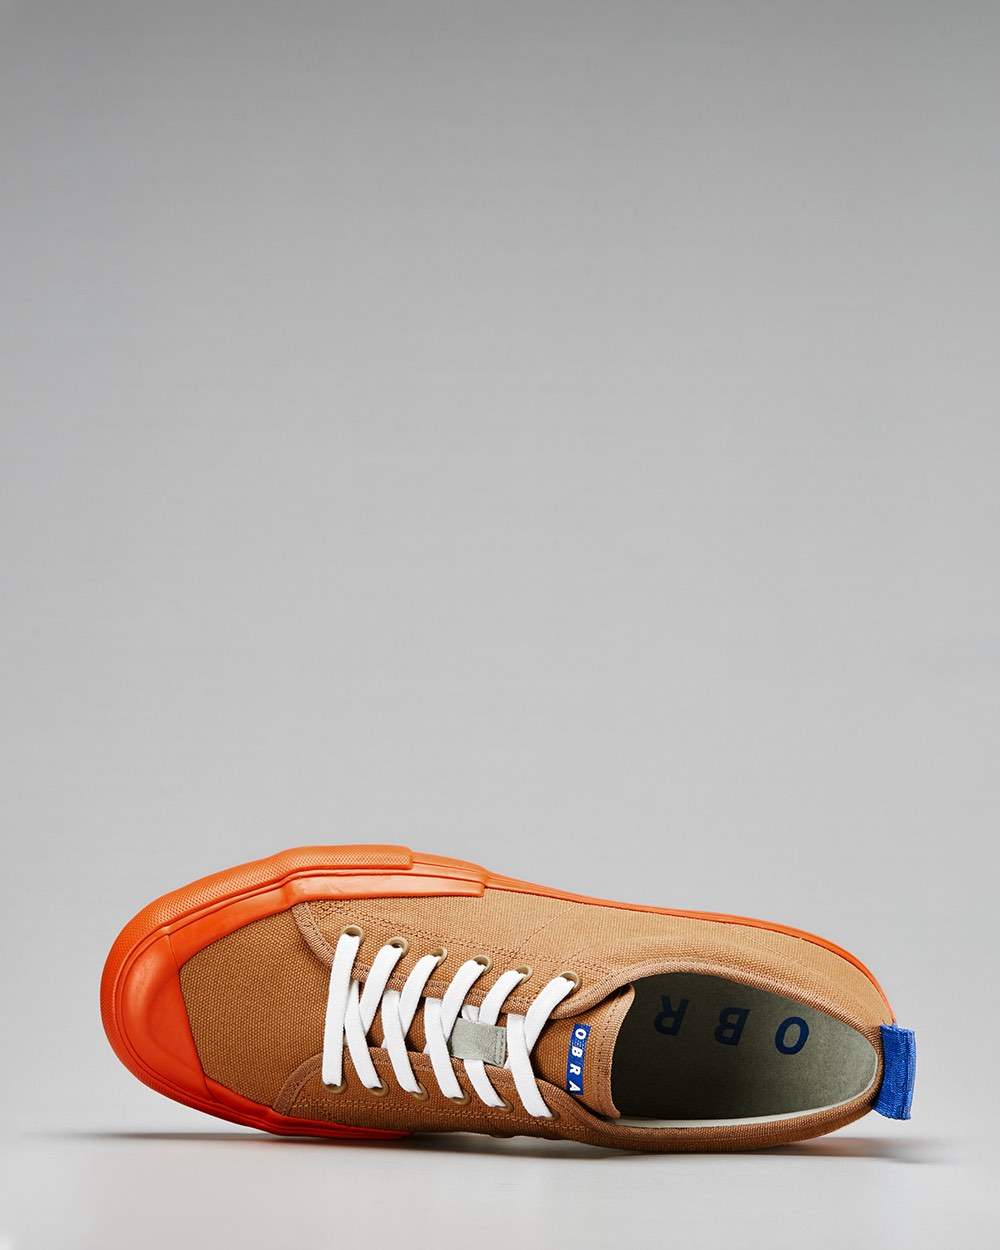 TERRA CANVAS LOW FULL CAP<br />Brown Sugar/Utility Orange/OBRA Blue